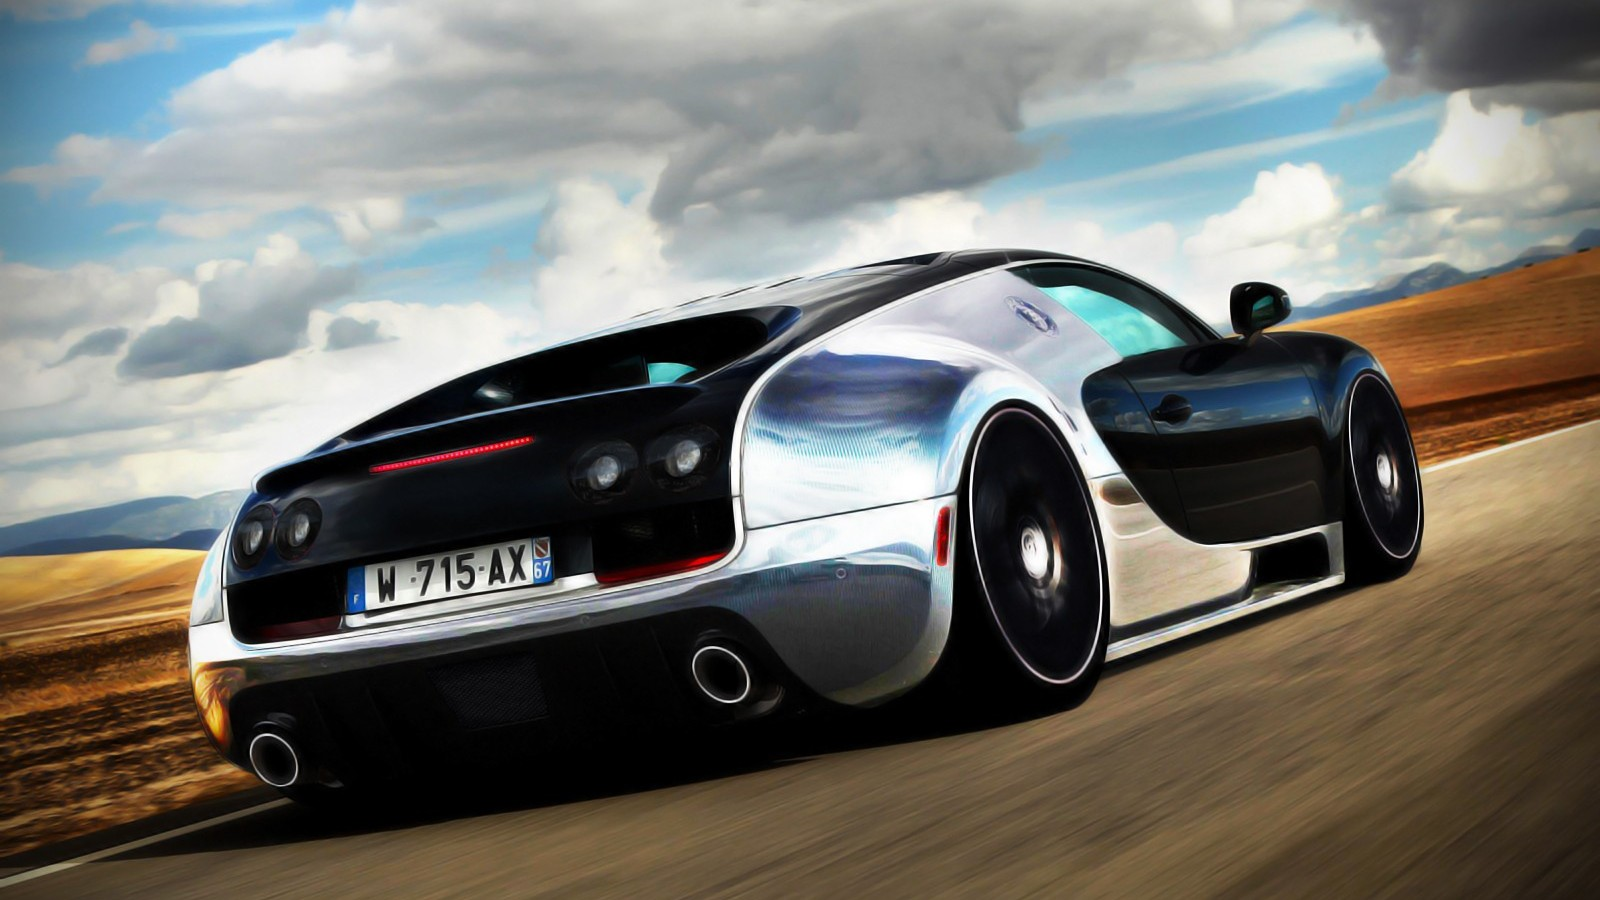 HD Bugatti Wallpapers For Download 1600x900